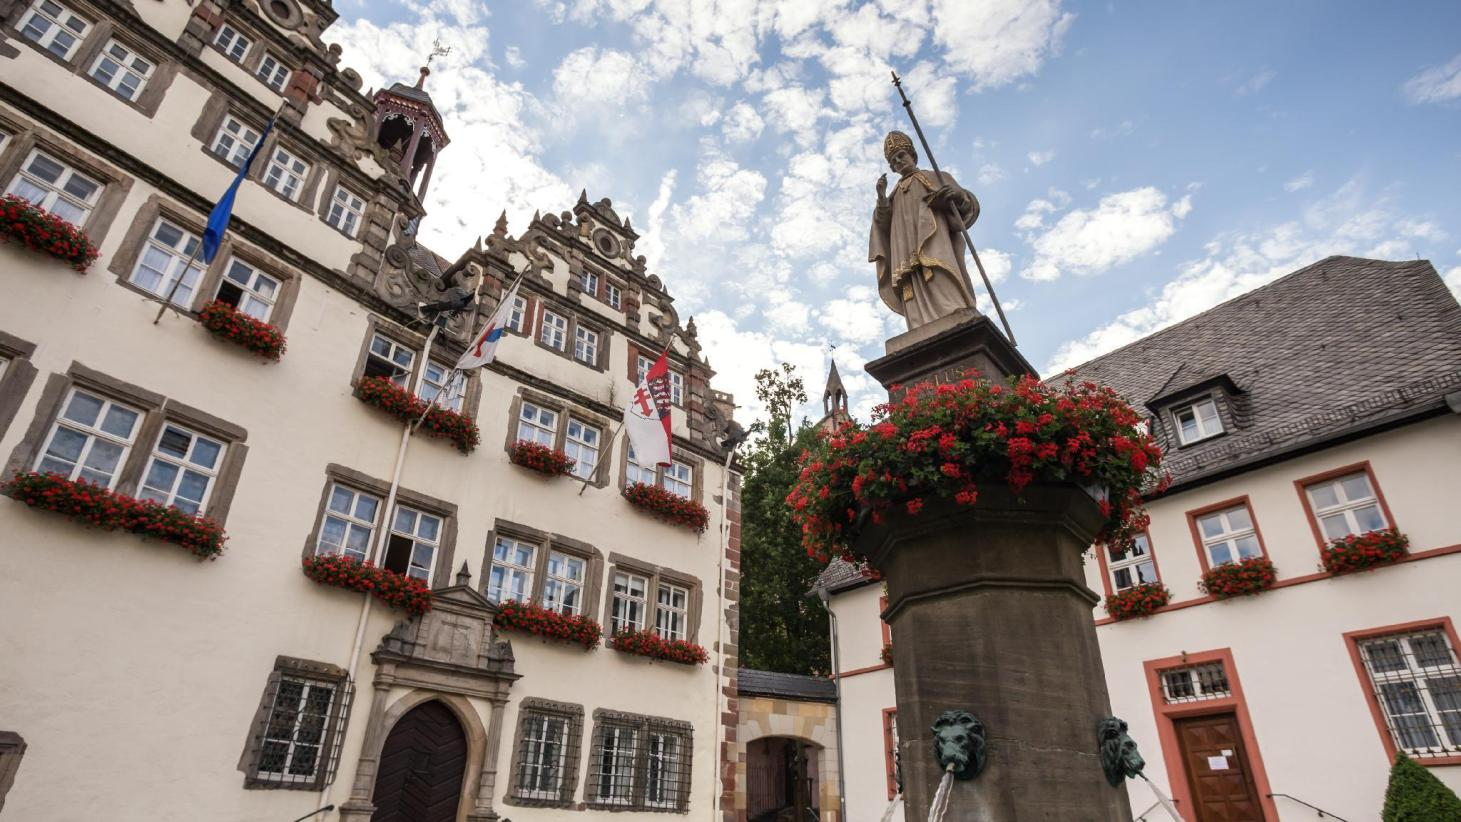 10 Best Bad Hersfeld Hotels Hd Photos Reviews Of Hotels In Bad